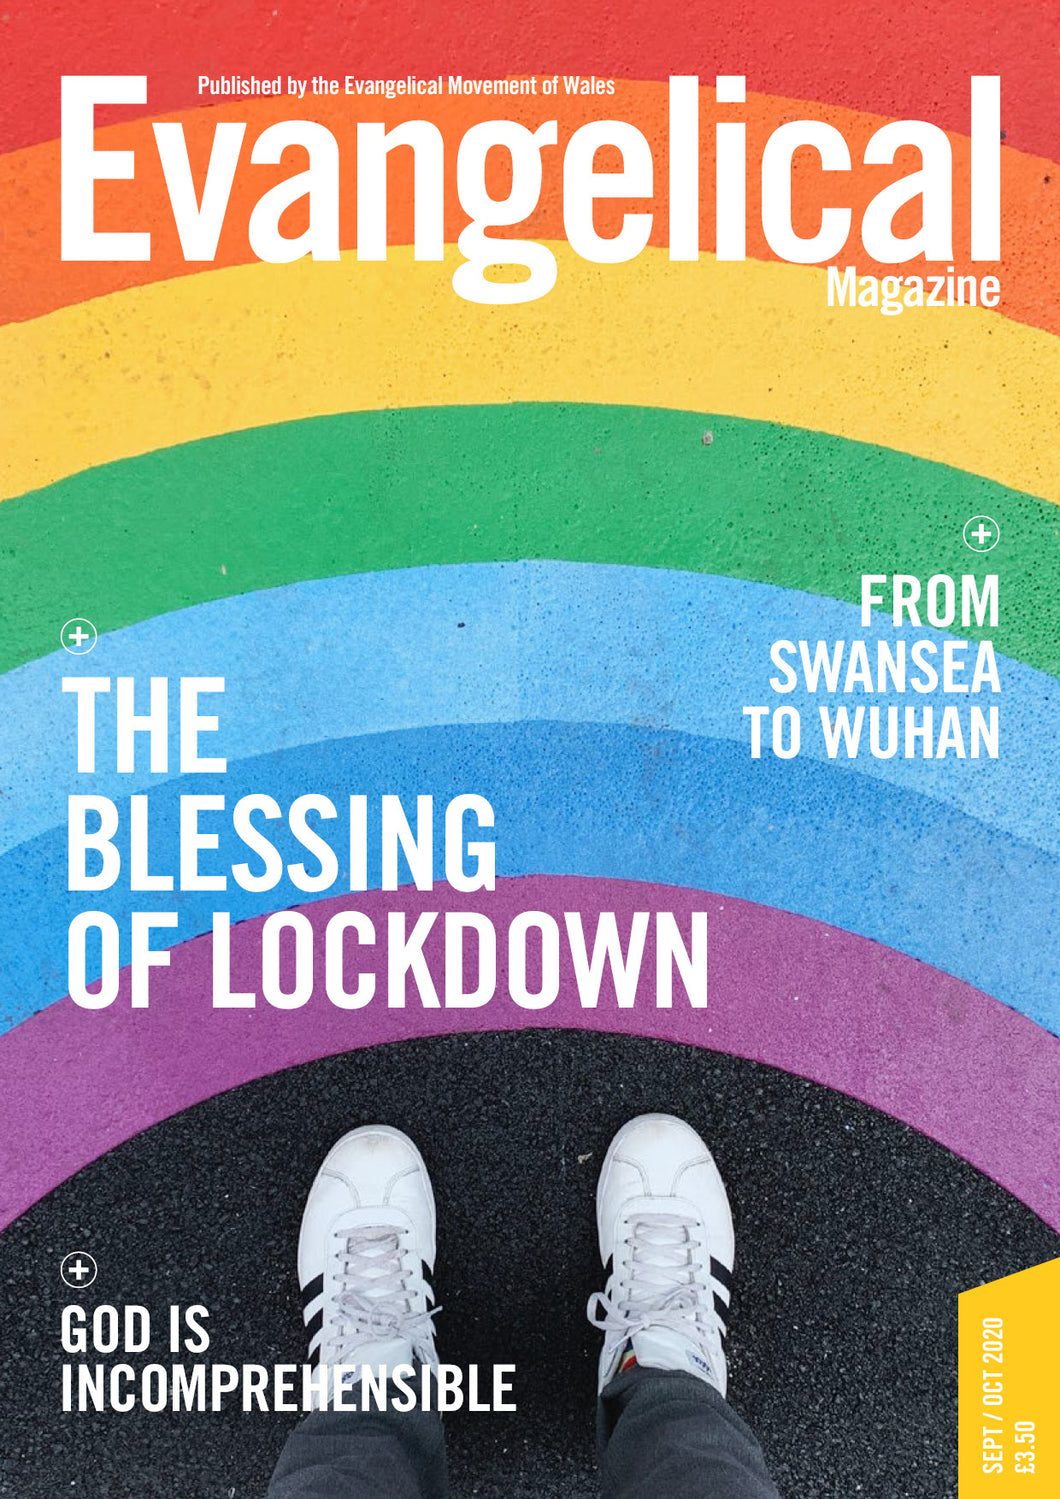 The Evangelical Magazine - 5 pack